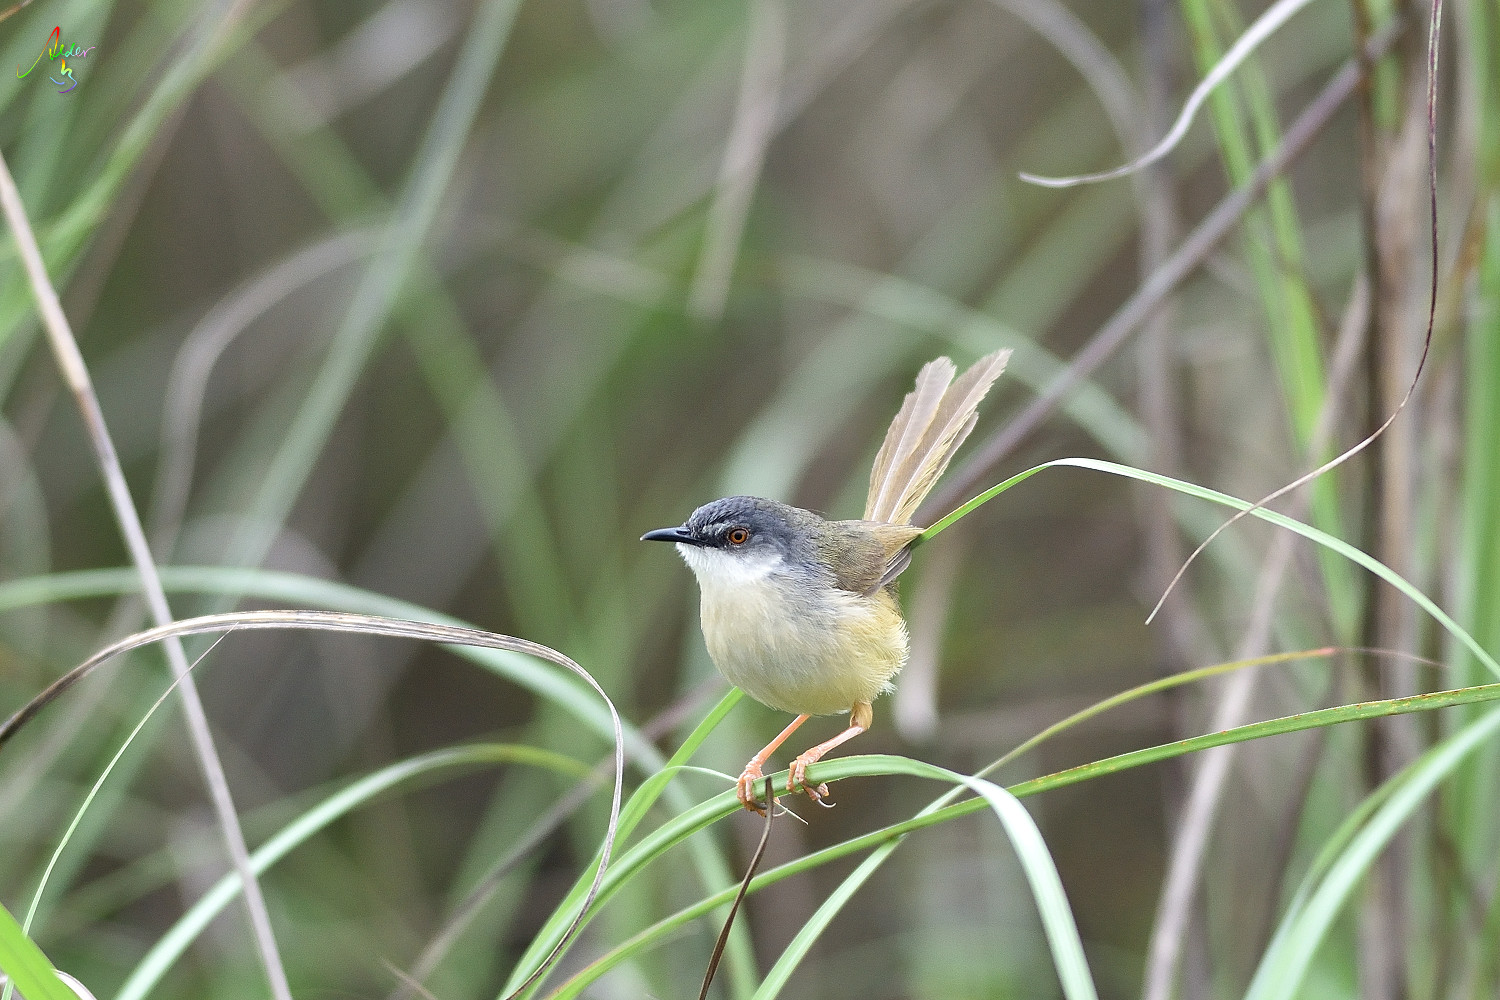 Yellow-bellied_Prinia_3636